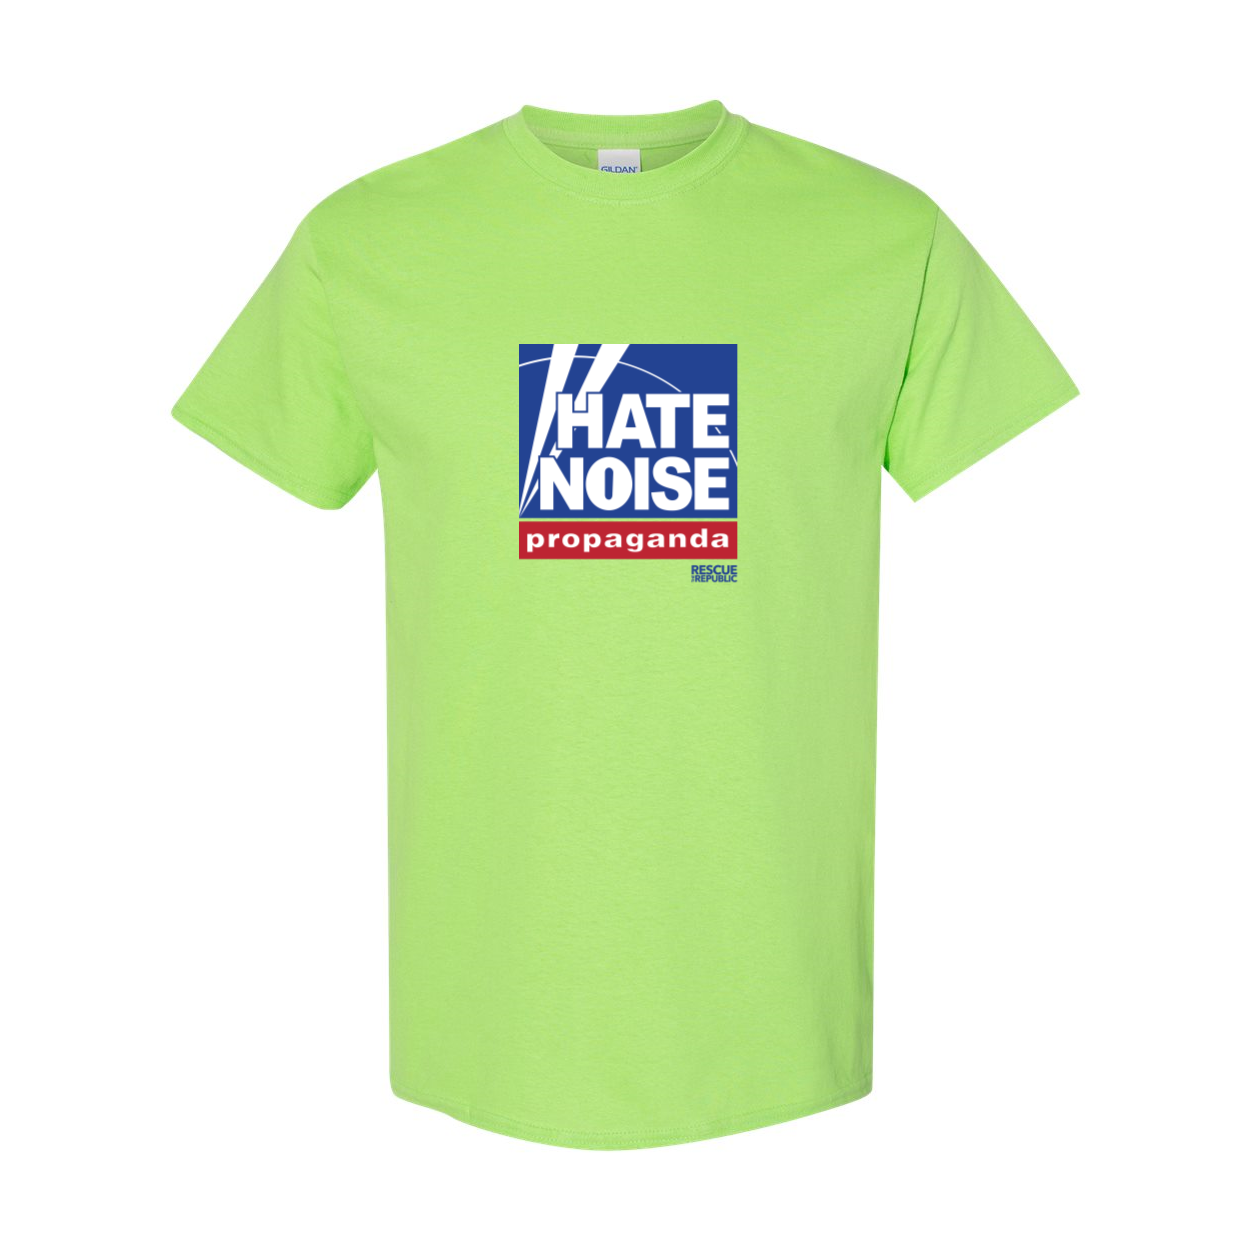 Hate Noise T-Shirt